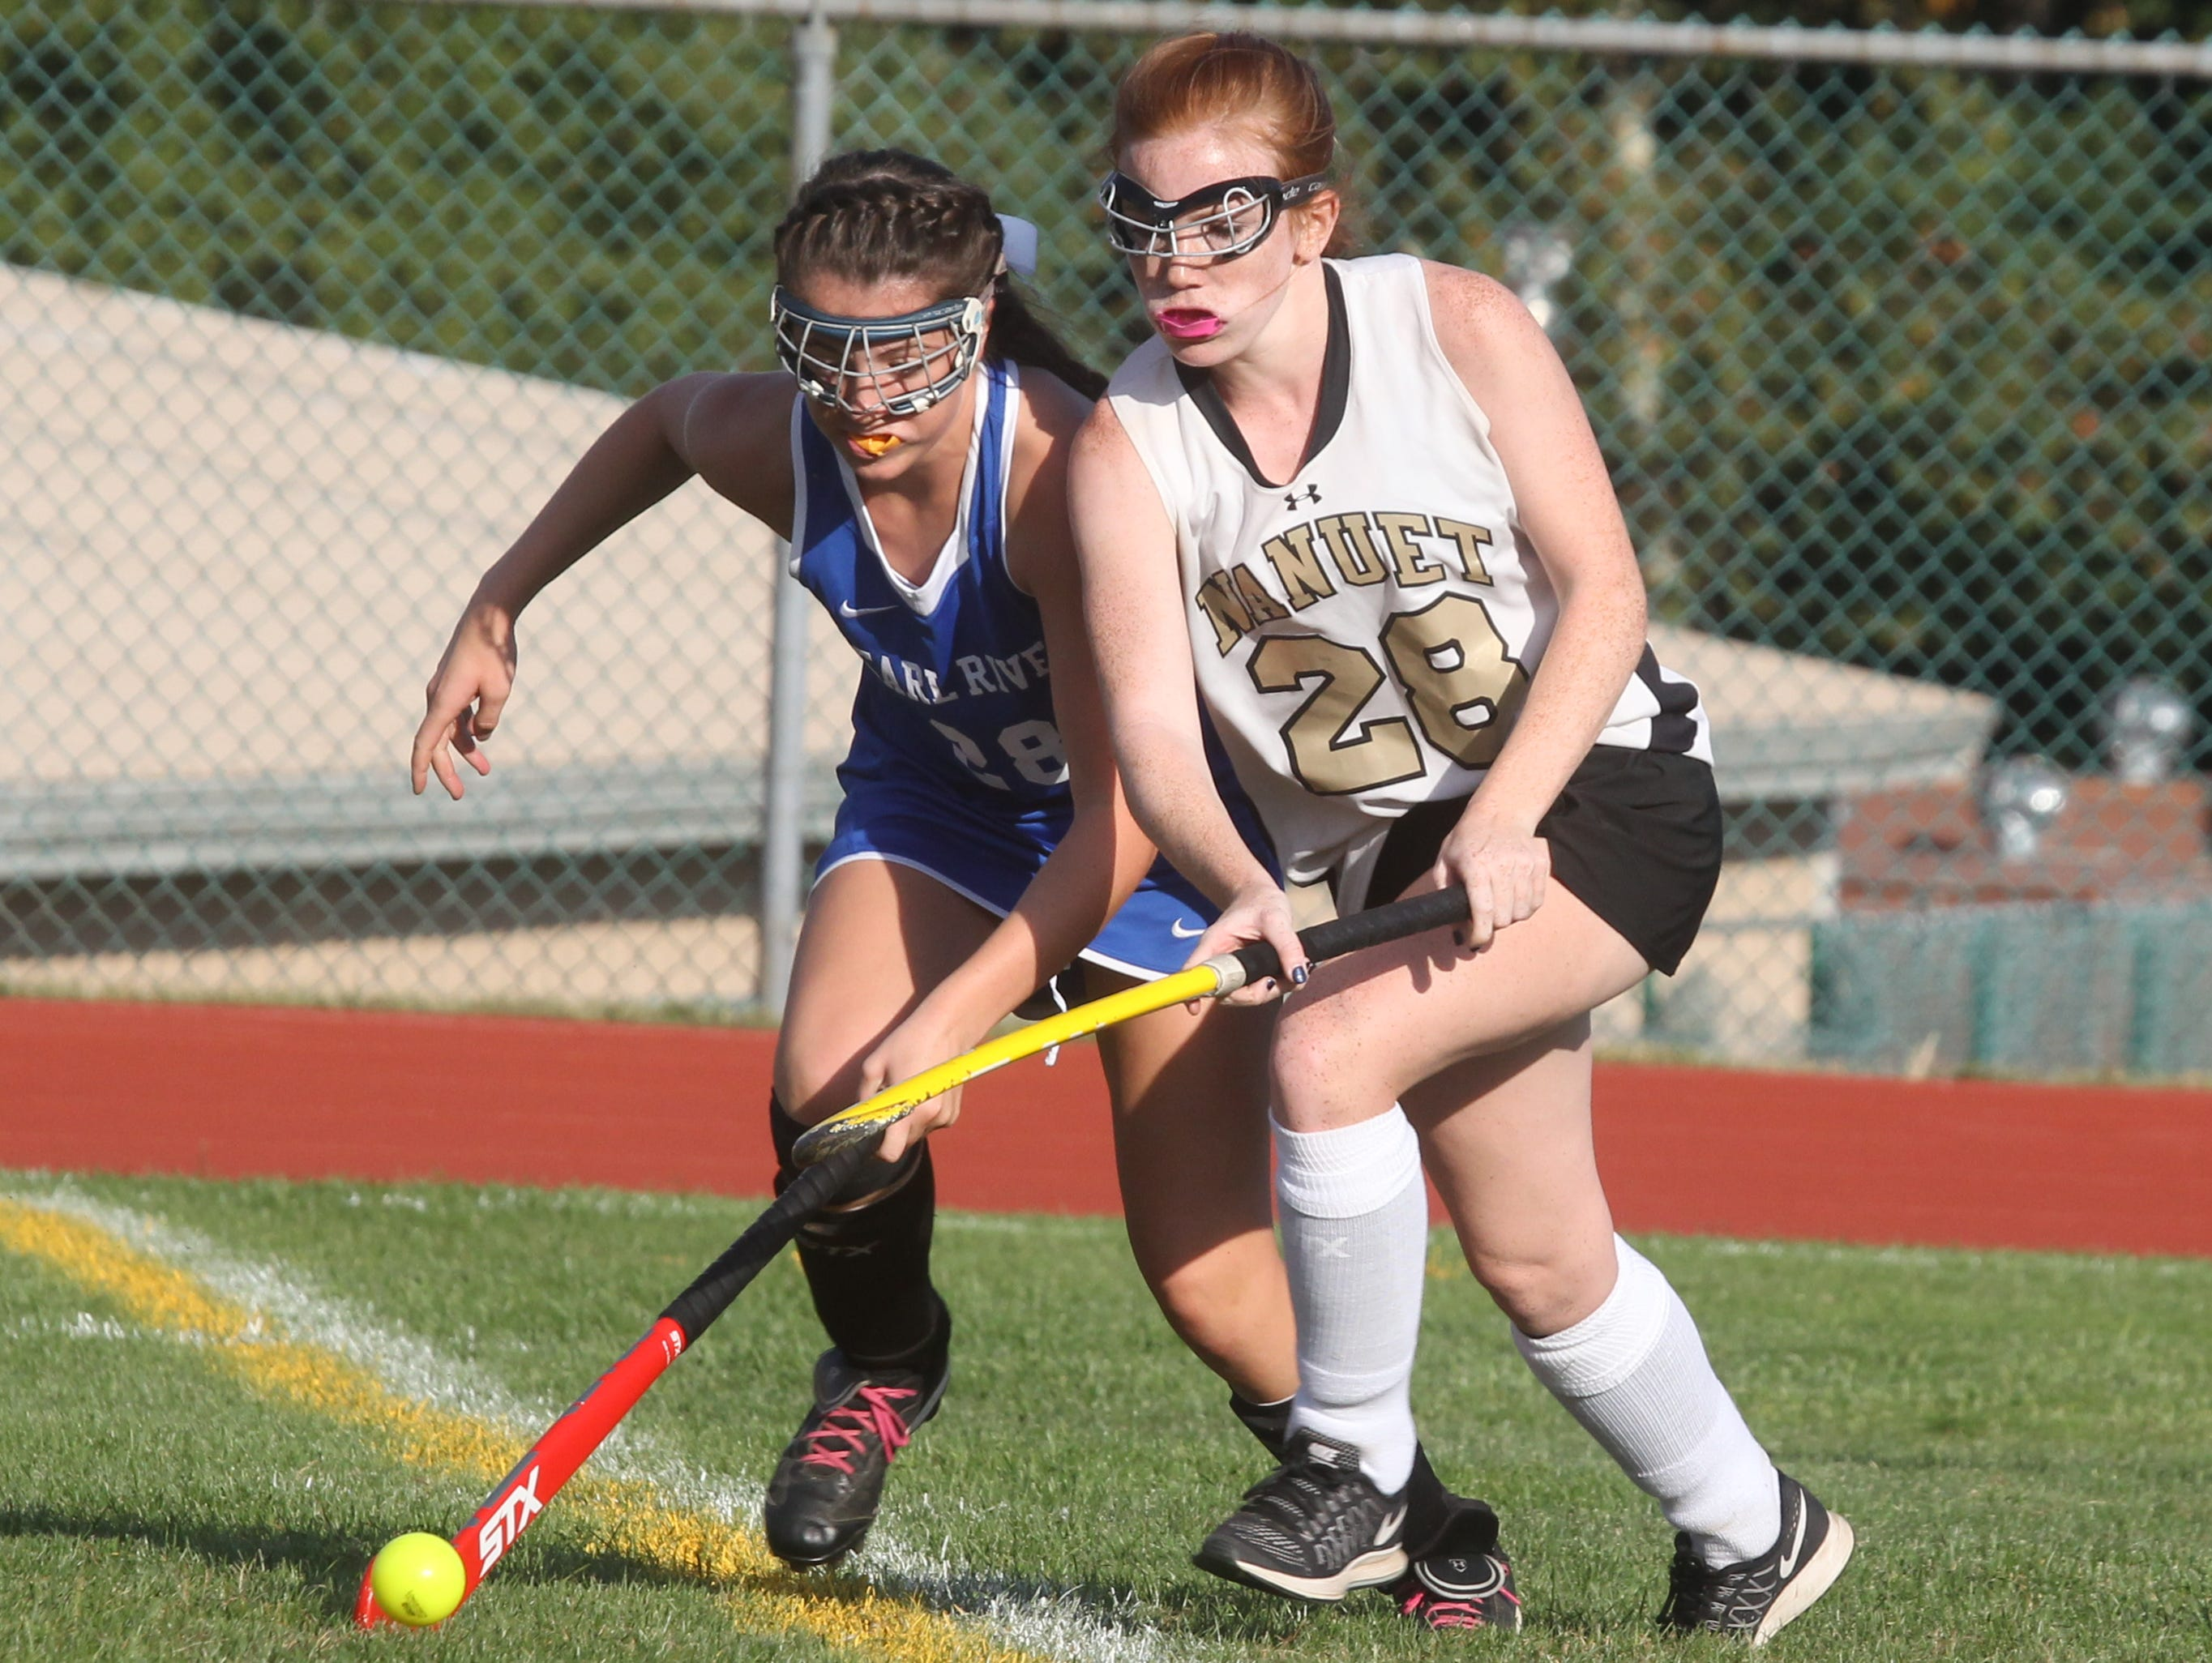 Pearl River's Allison Tarsnane, left, is pressured by Nanuet's Alex Ryan during their game at Nanuet on Friday. The game ended in a 0-0 tie.